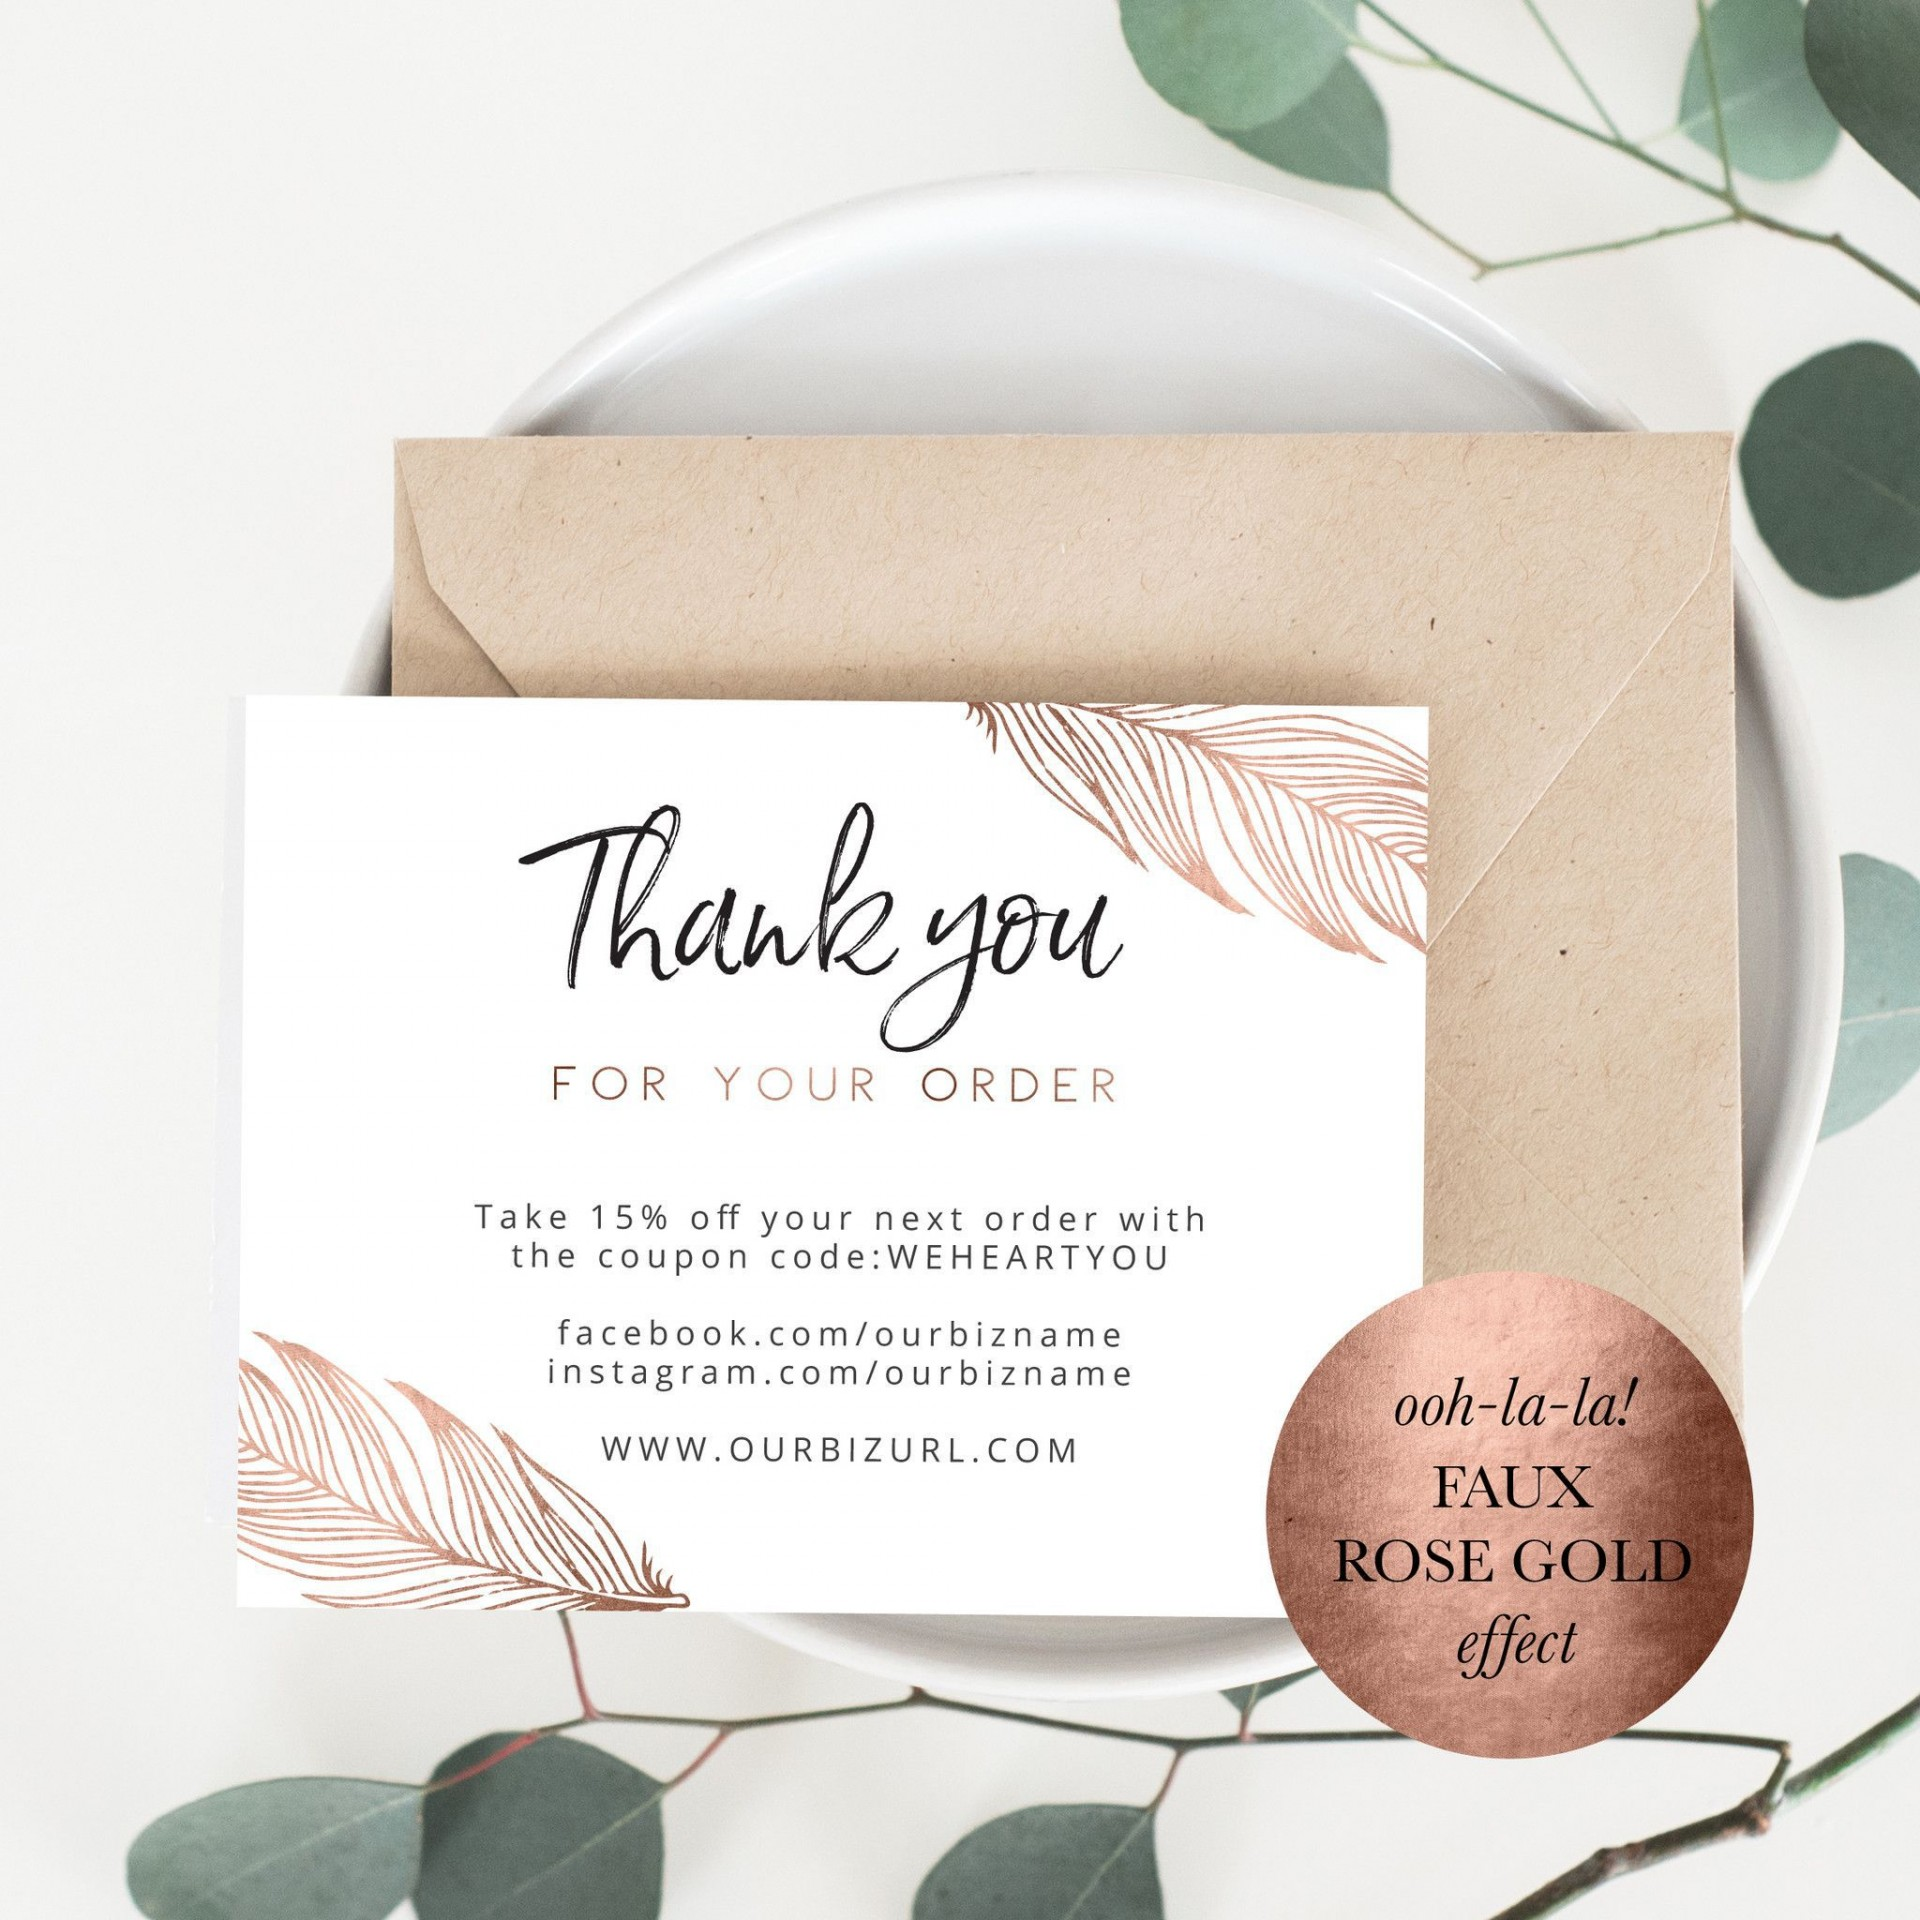 000 Phenomenal Thank You Note Template Pdf High Def  Card Free Sample Letter For Donation Of Good1920